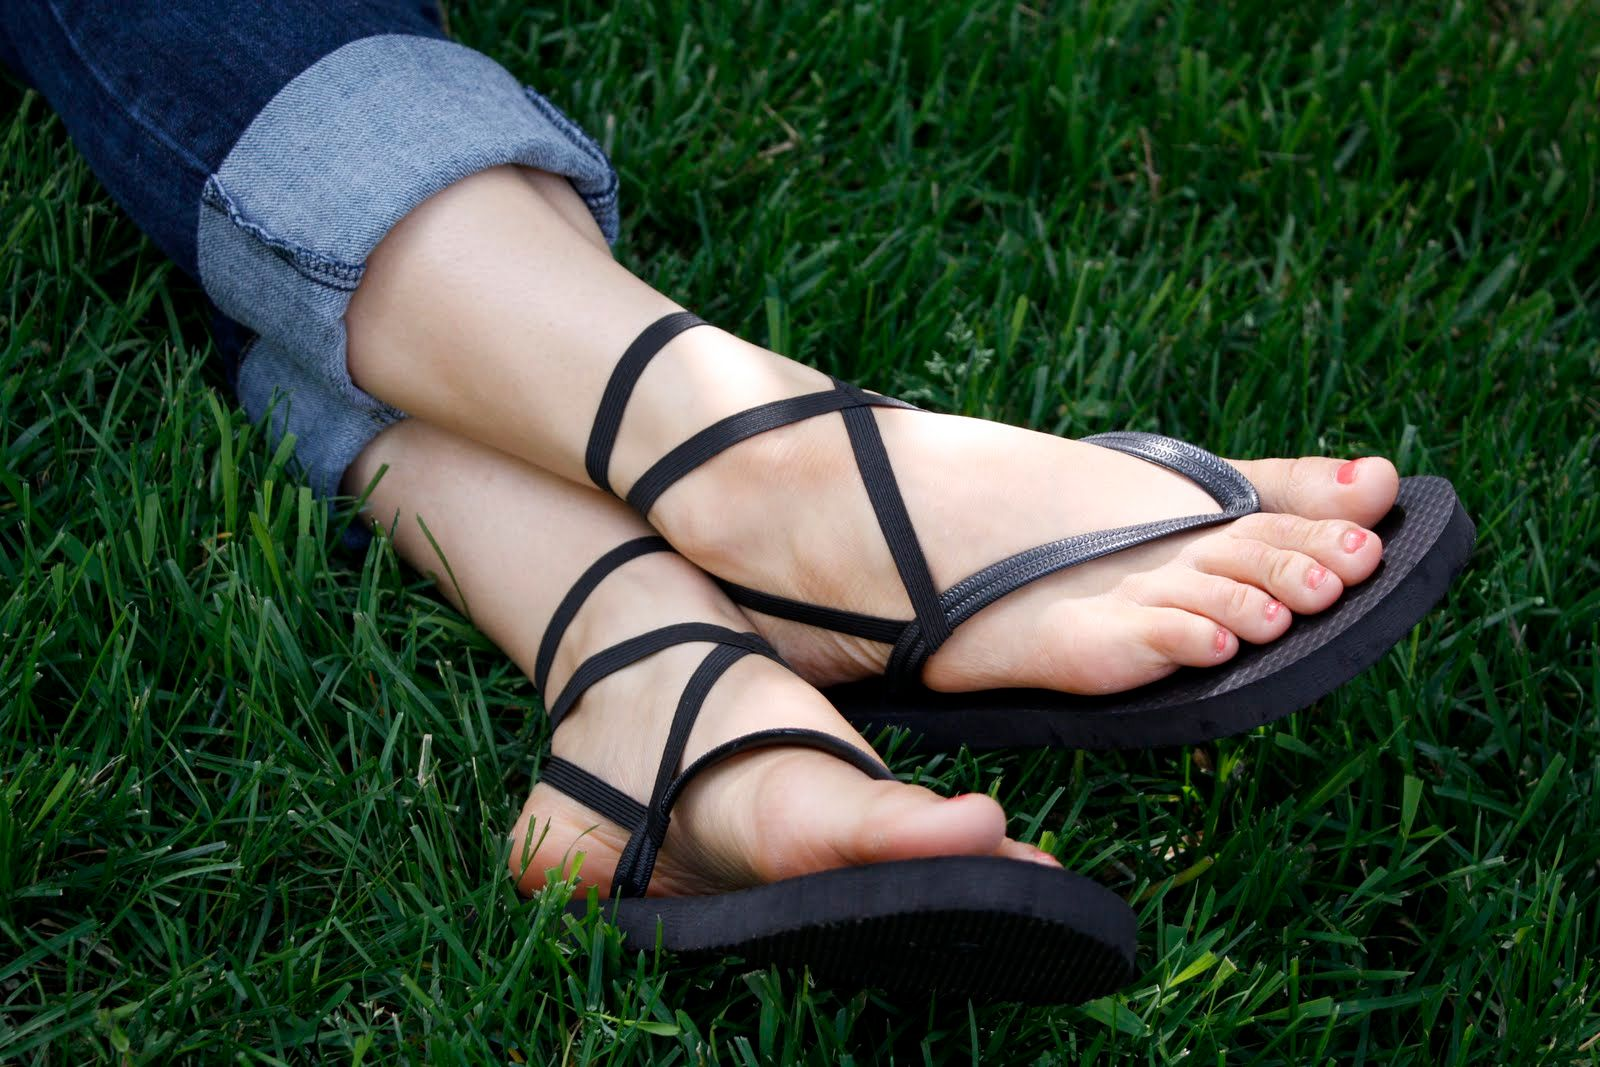 Someone wearing flip-flops in the grass